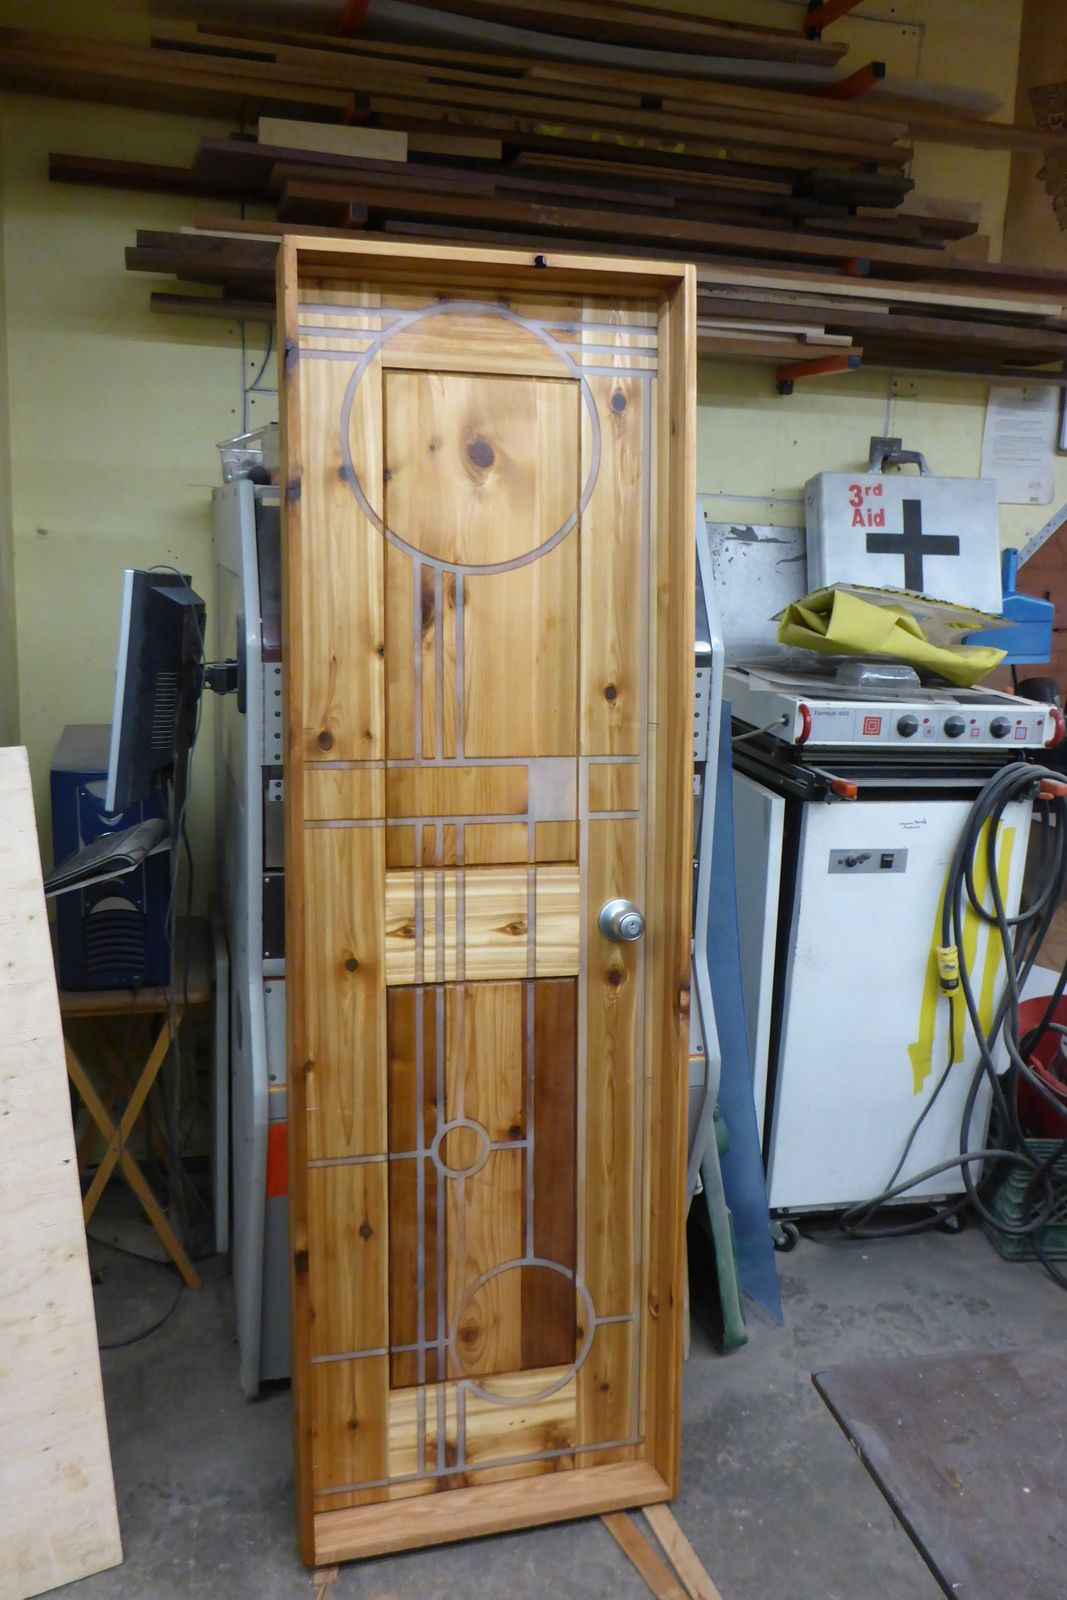 For anyone wondering how I made that door.